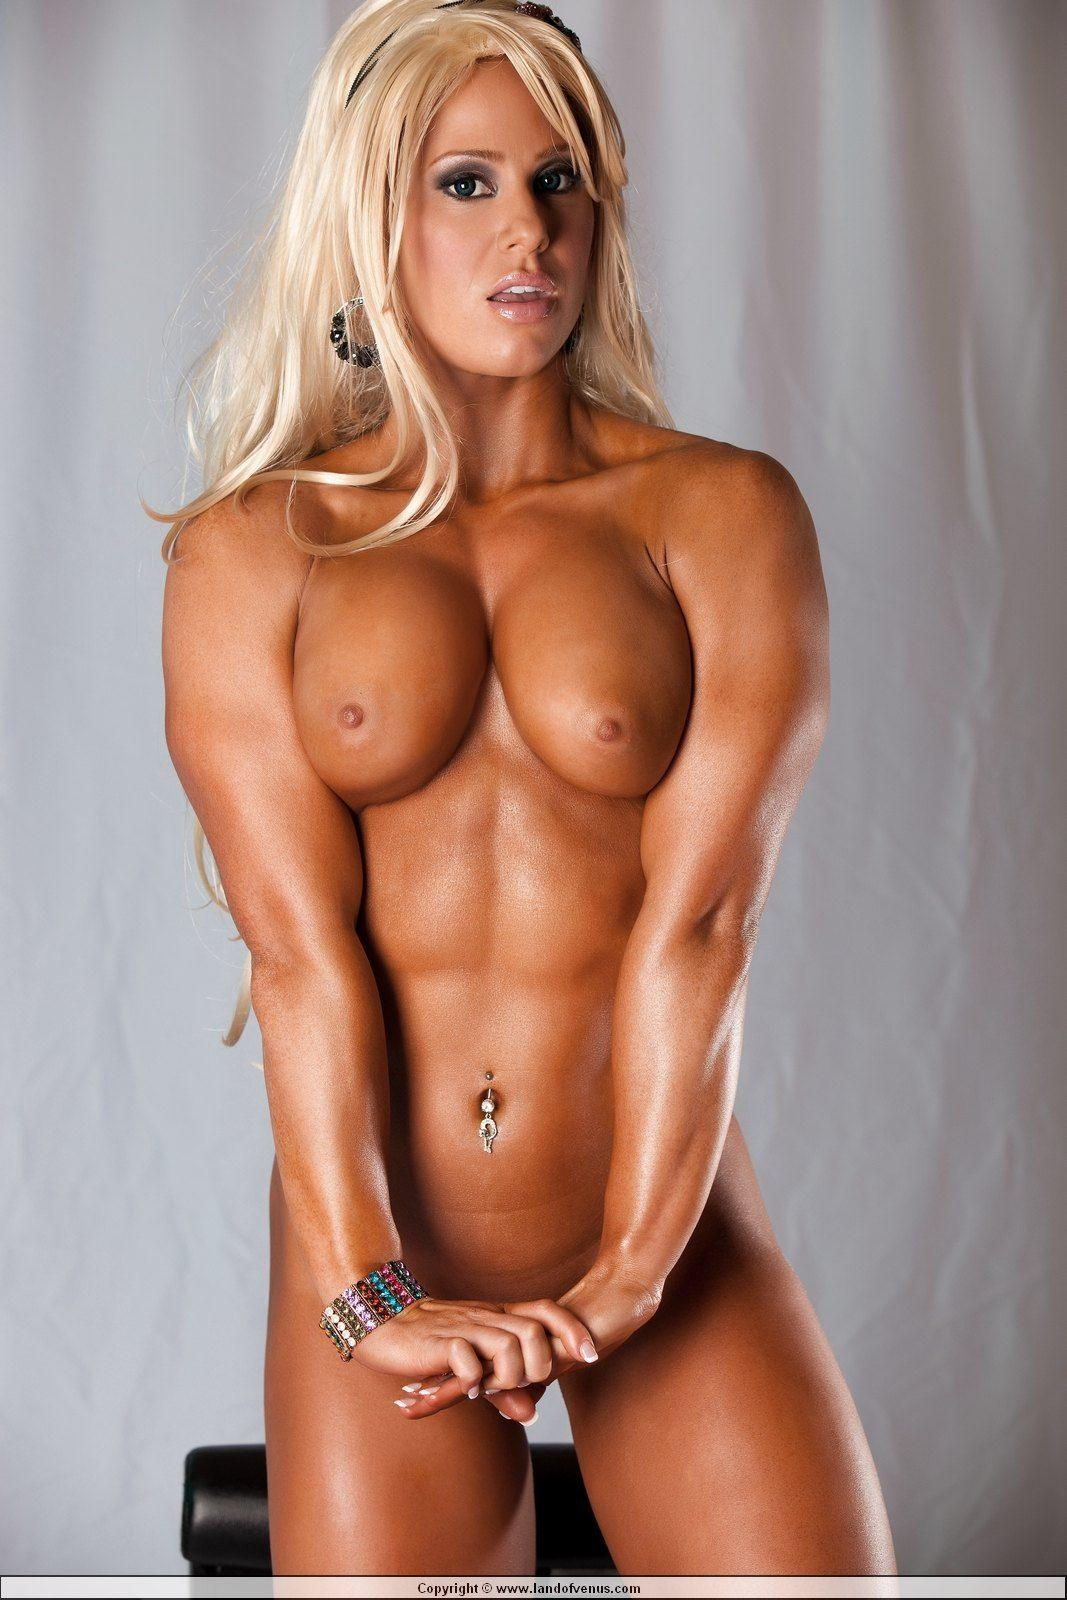 Gallery muscle nude woman